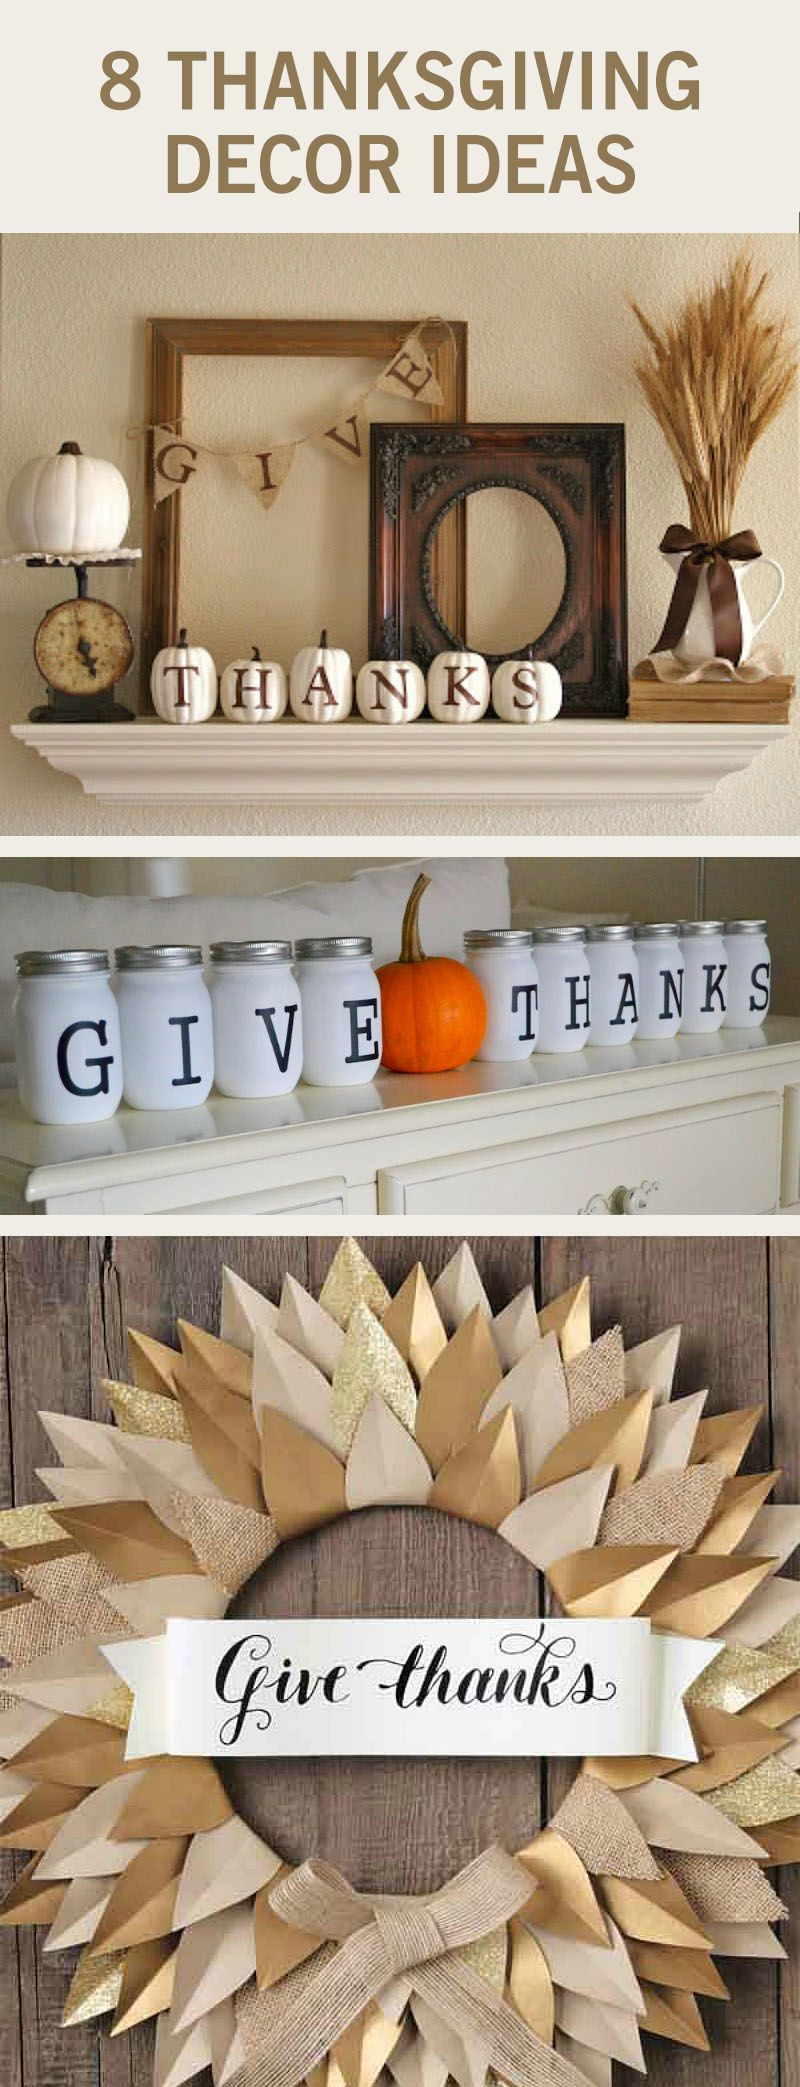 8 Pretty Ways to Show You're Thankful This Season #diyfalldecor